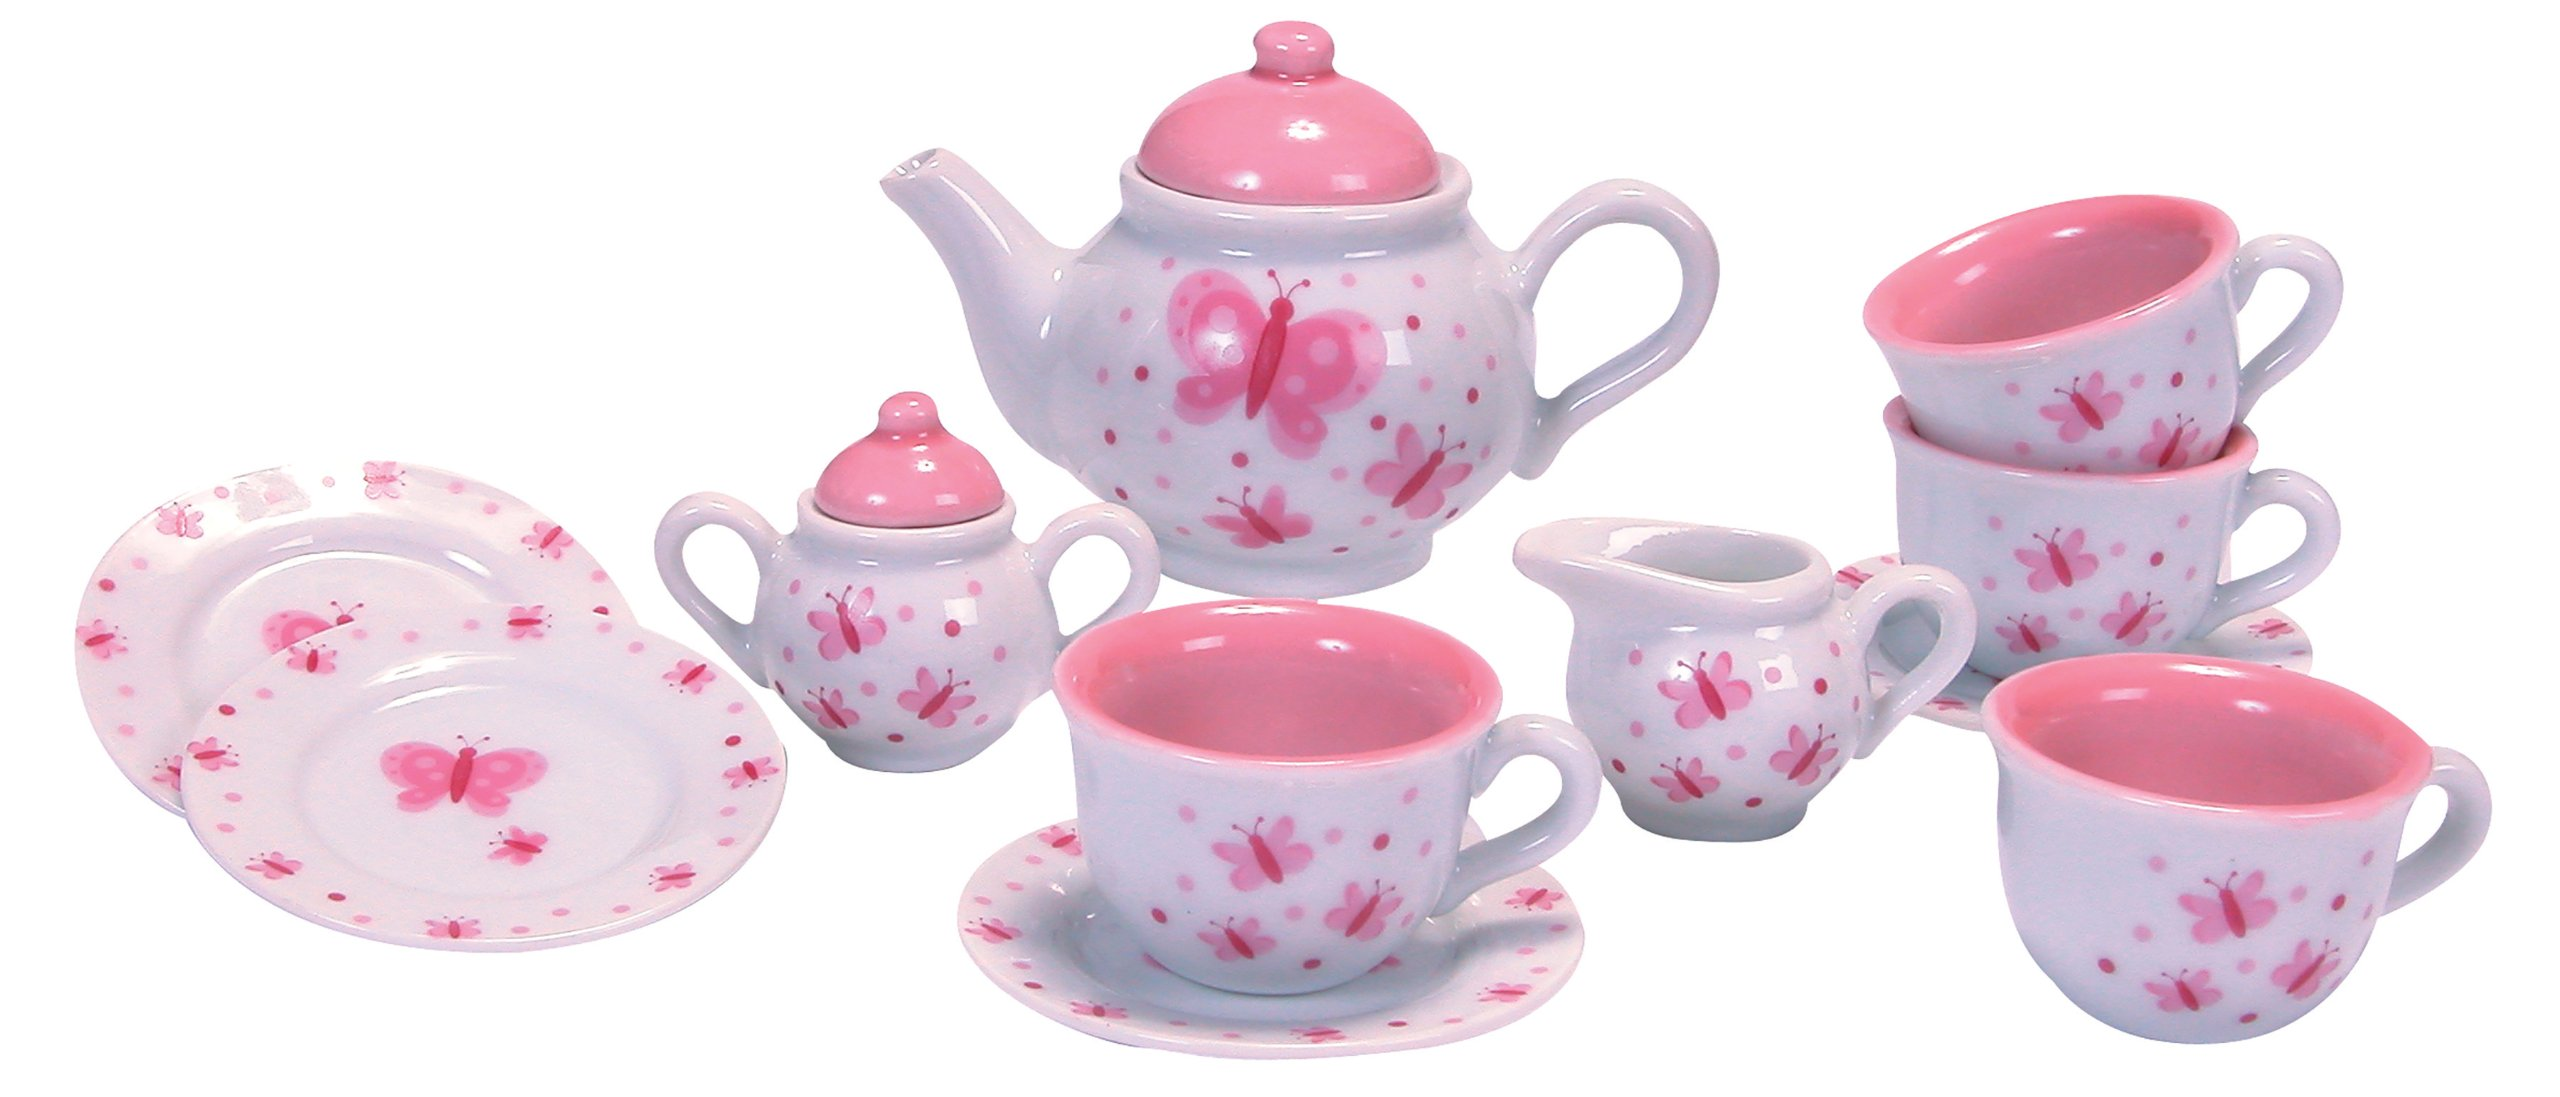 Schylling Butterfly Porcelain Tea Set Kids Girls Pretend